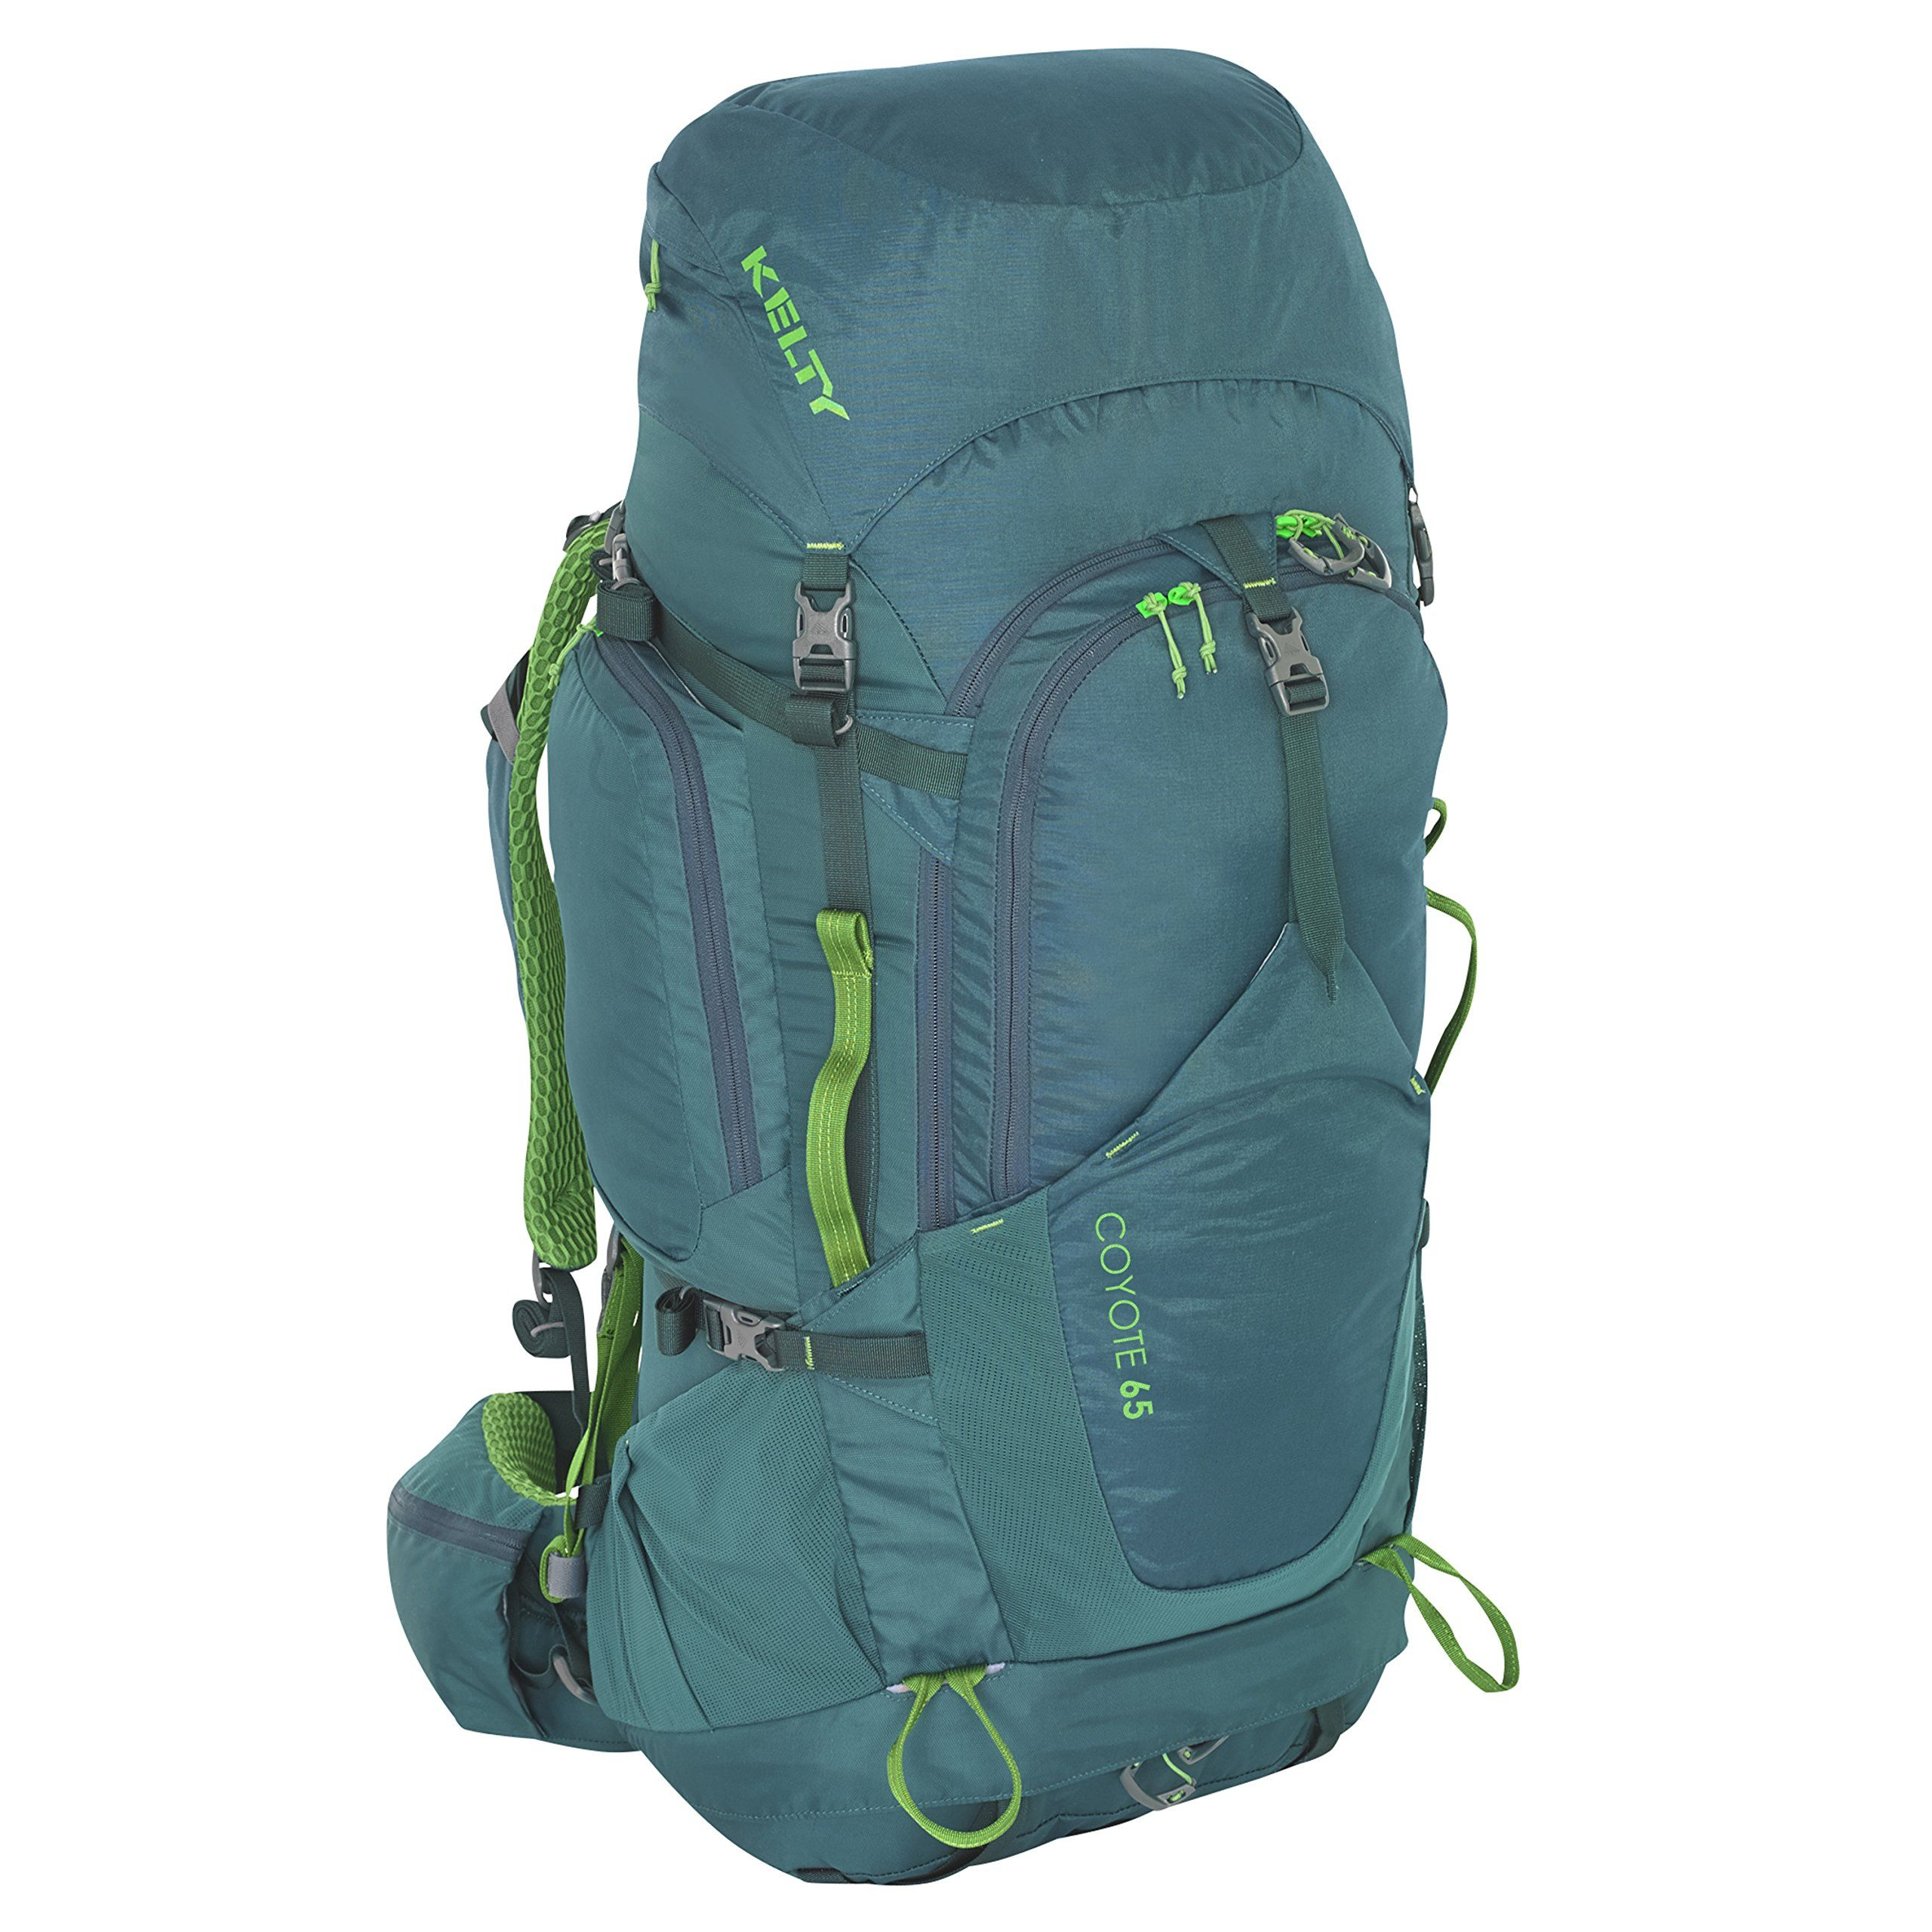 40//60//65L Waterproof Camping Hiking Climbing Backpack Outdoor Travel Luggage Bag